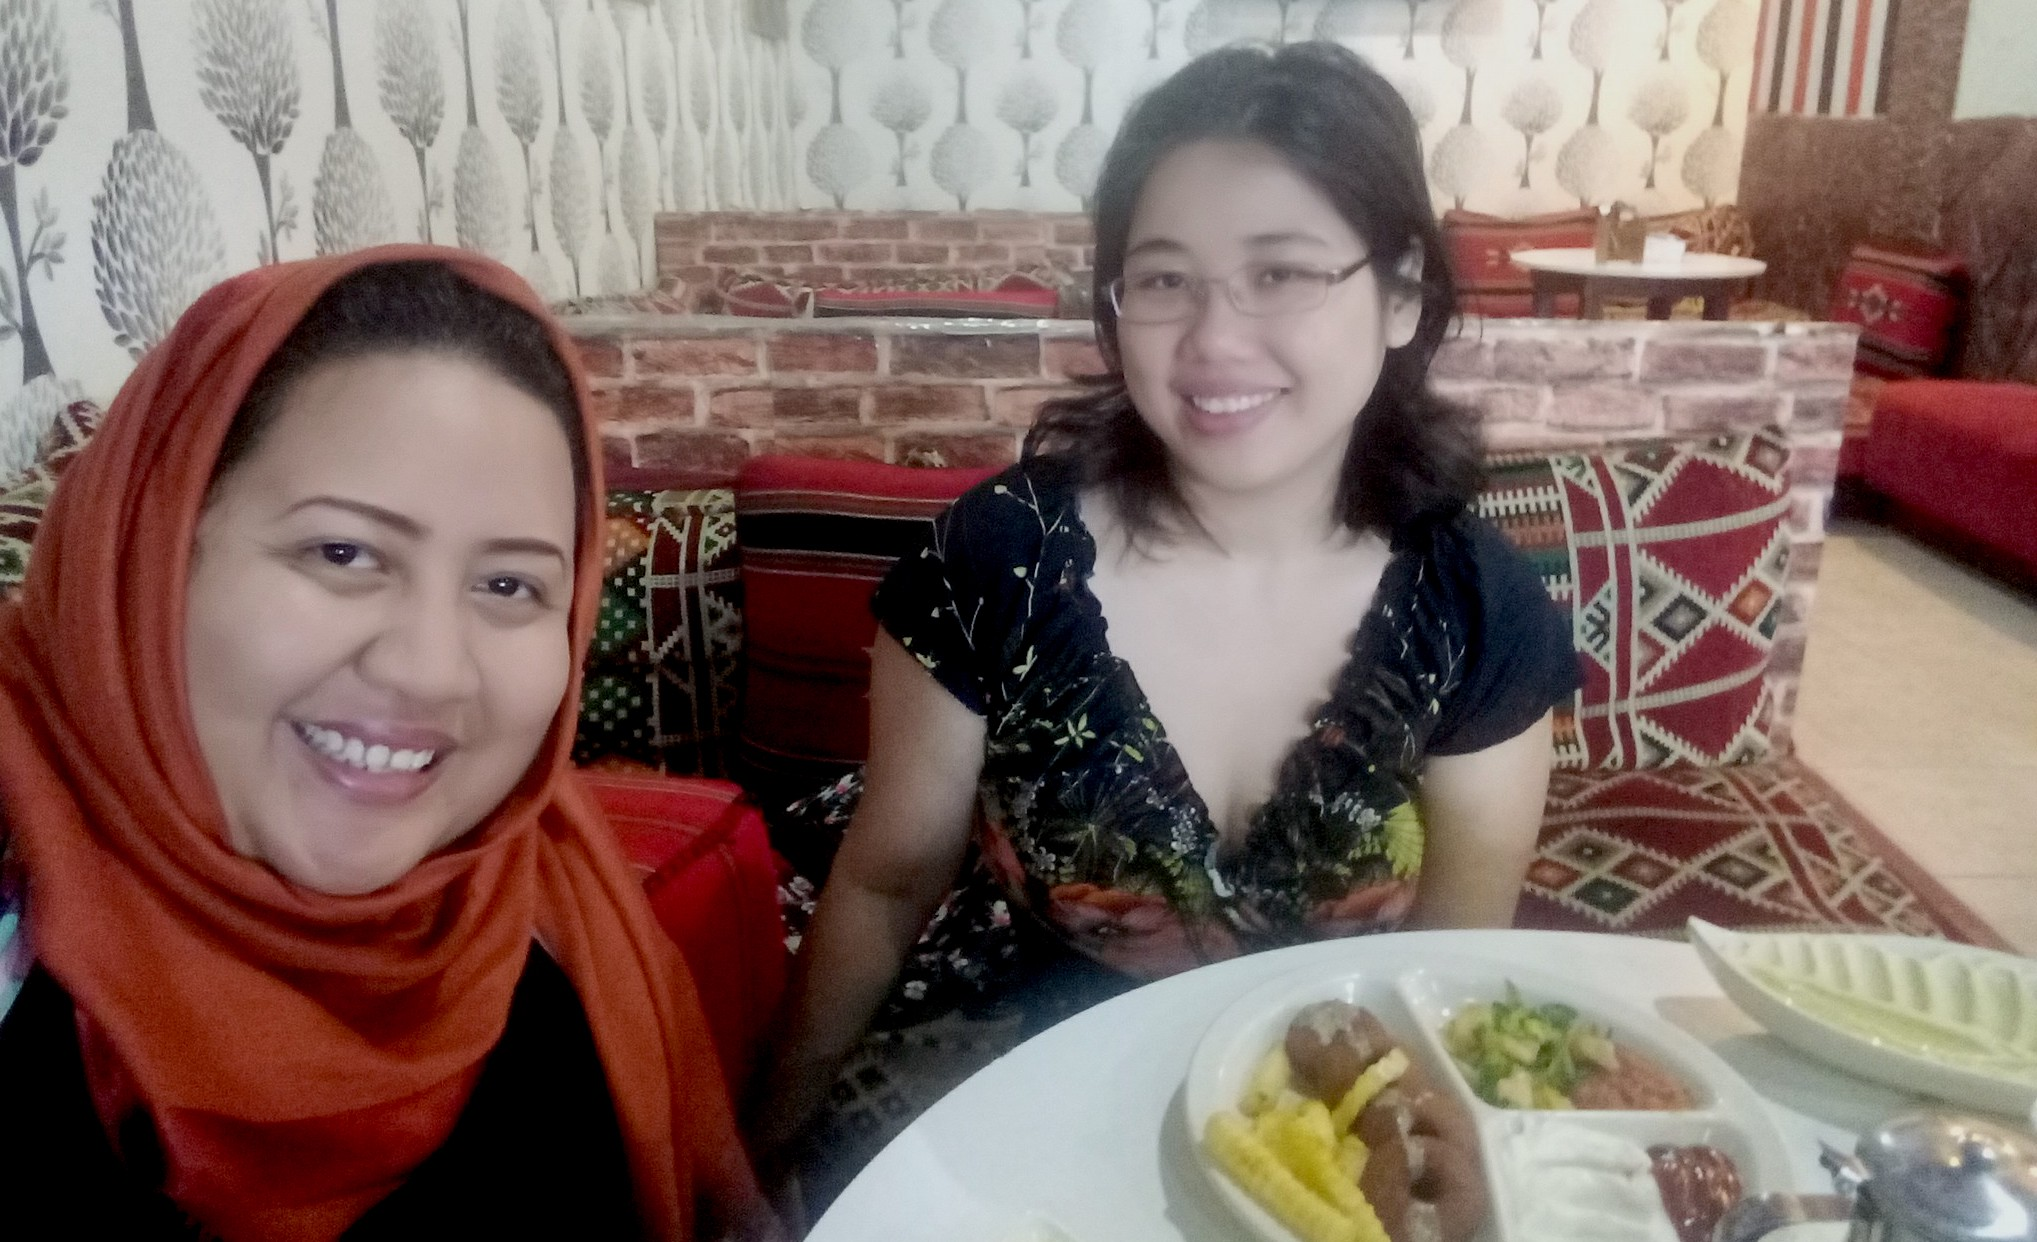 Atiqah and me hanging out at a Syrian restaurant.